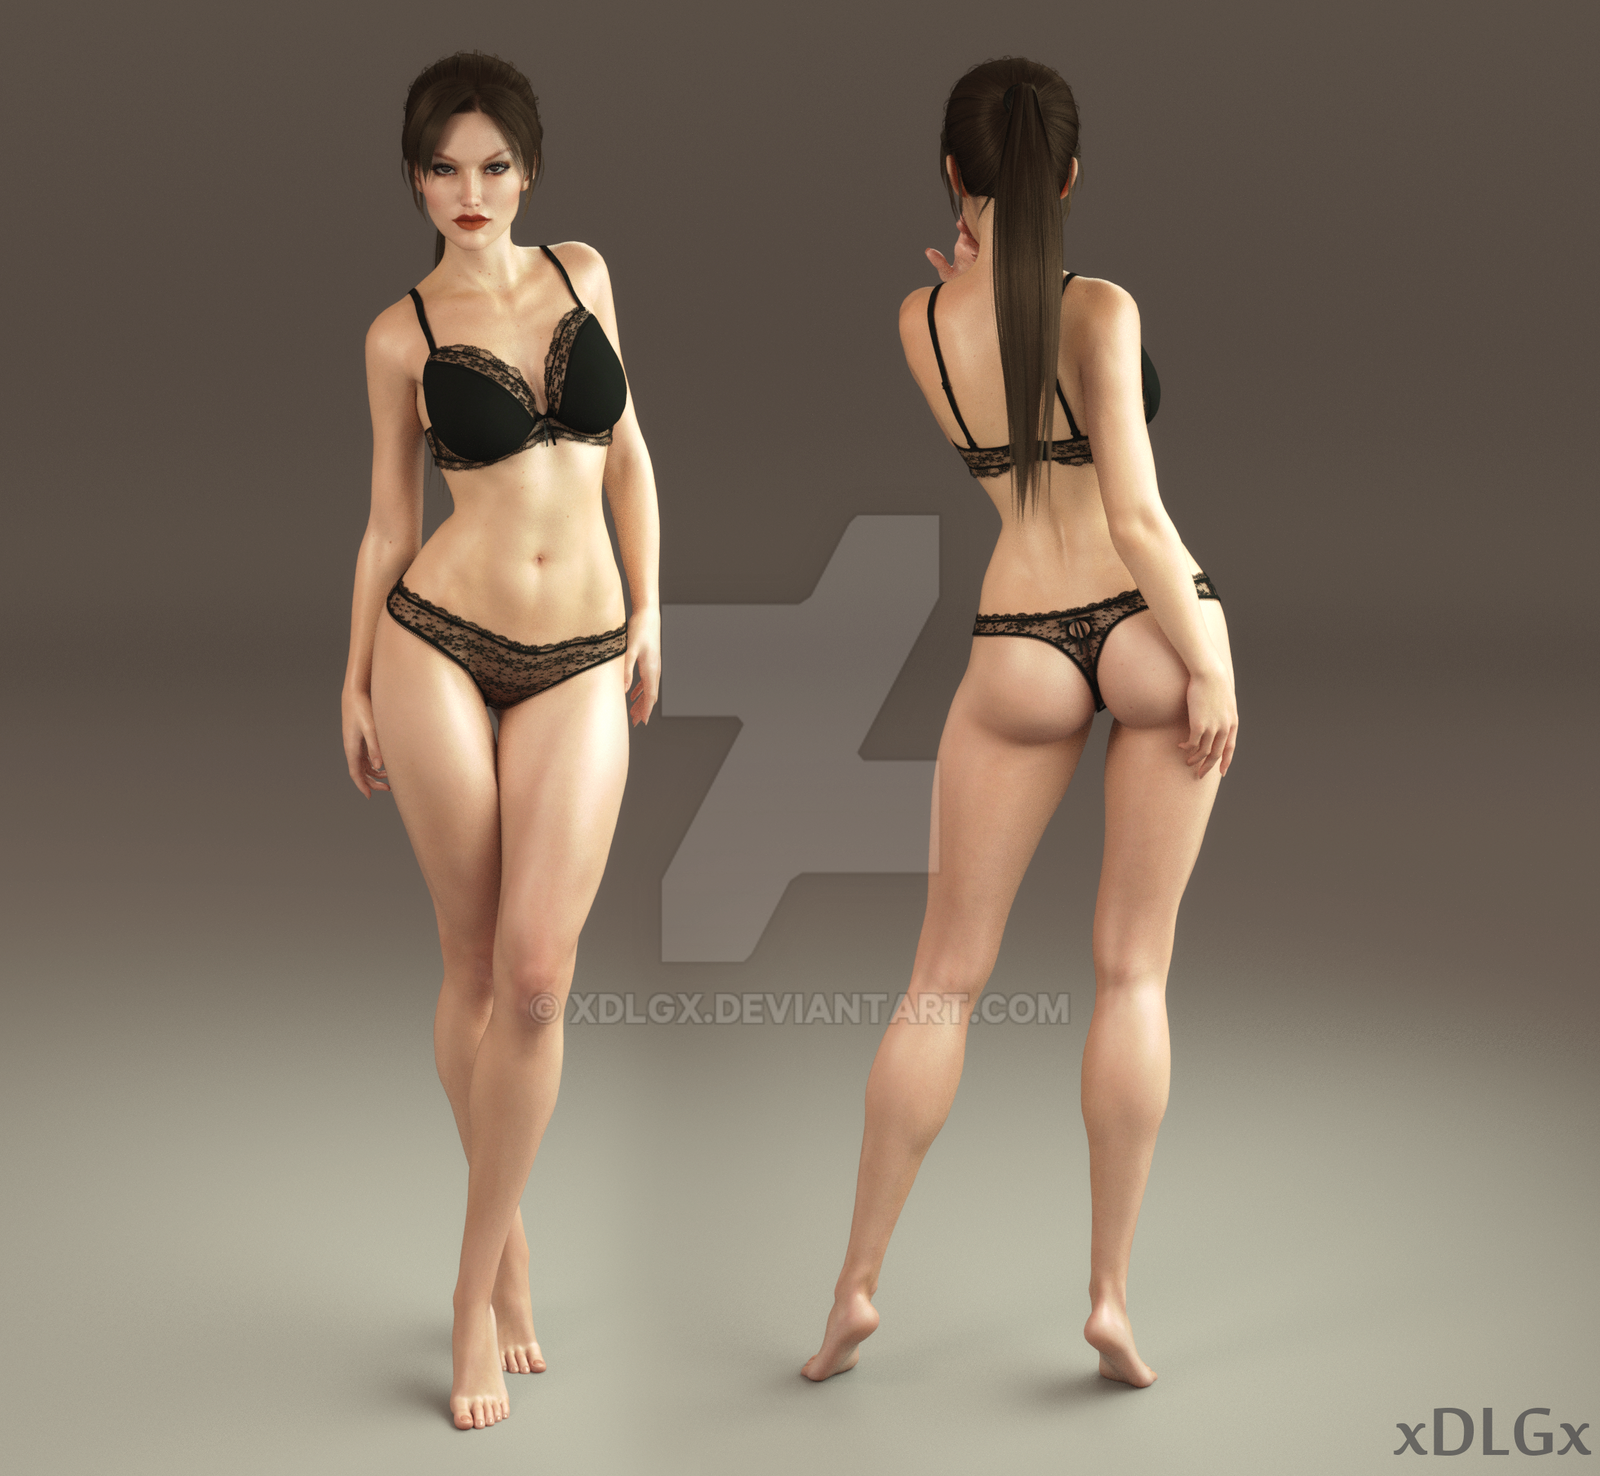 Dickgirl muscle 3d nude download